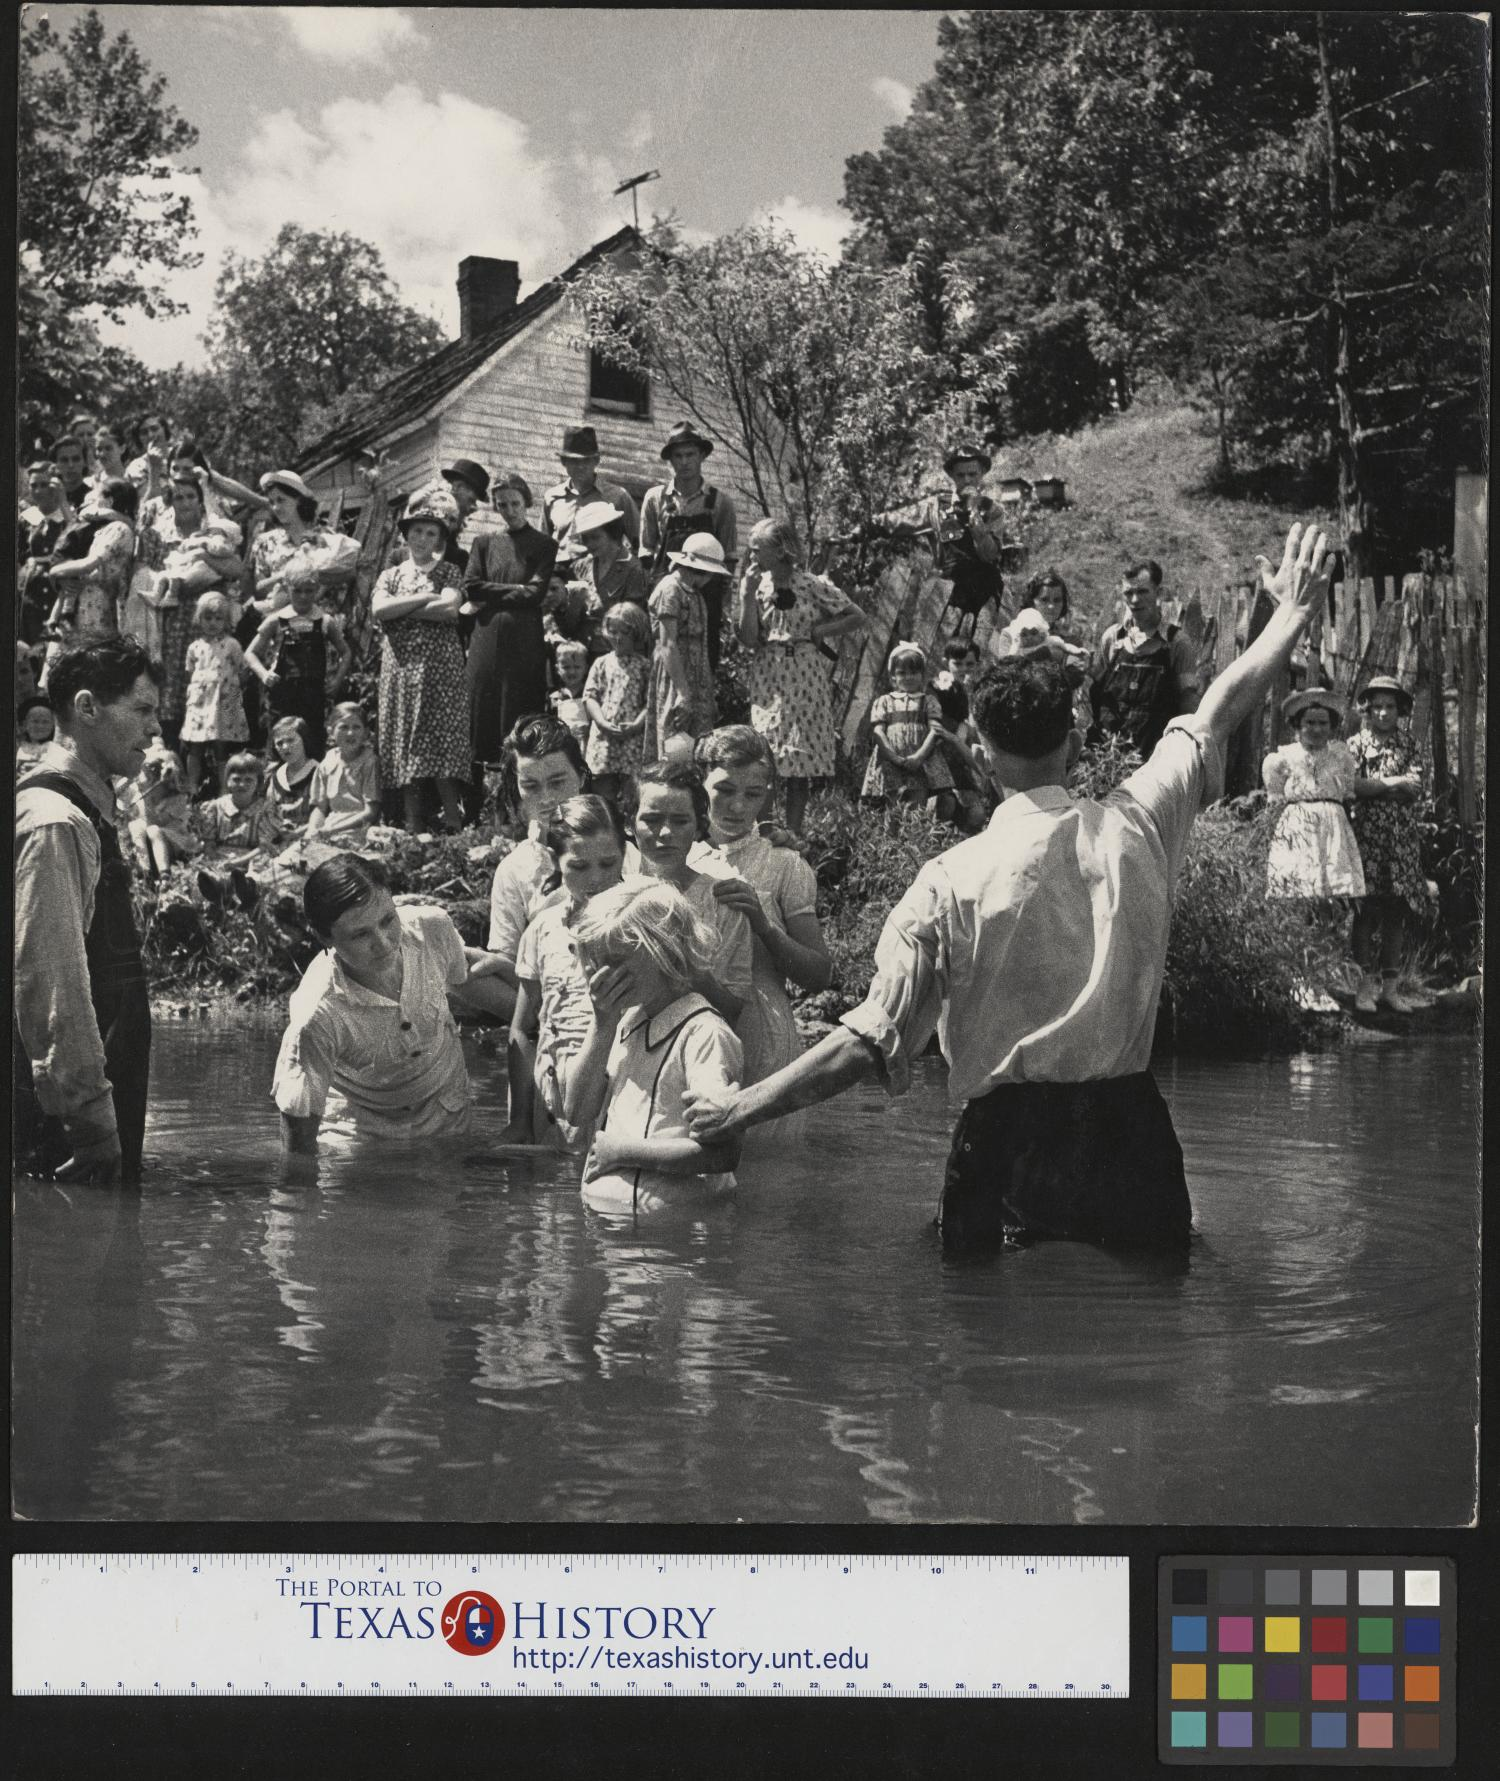 [Baptising in Olde Towne Creek], Photograph of the baptism of Ivana Wright, who is standing a creek next to Preacher Hugh Vancel; Vancel is facing the bank and raising one of his hands toward the crowd standing on the bank. Immediately behind them, Hester Welch, Minnie Hicks, Cleo McCurey, Lilian Hicks, and Lenore Treece are also in the creek, standing in line. The baptisms took place int he Olde Towne Creek outside John Owens home in Red Hill, Tennessee.,